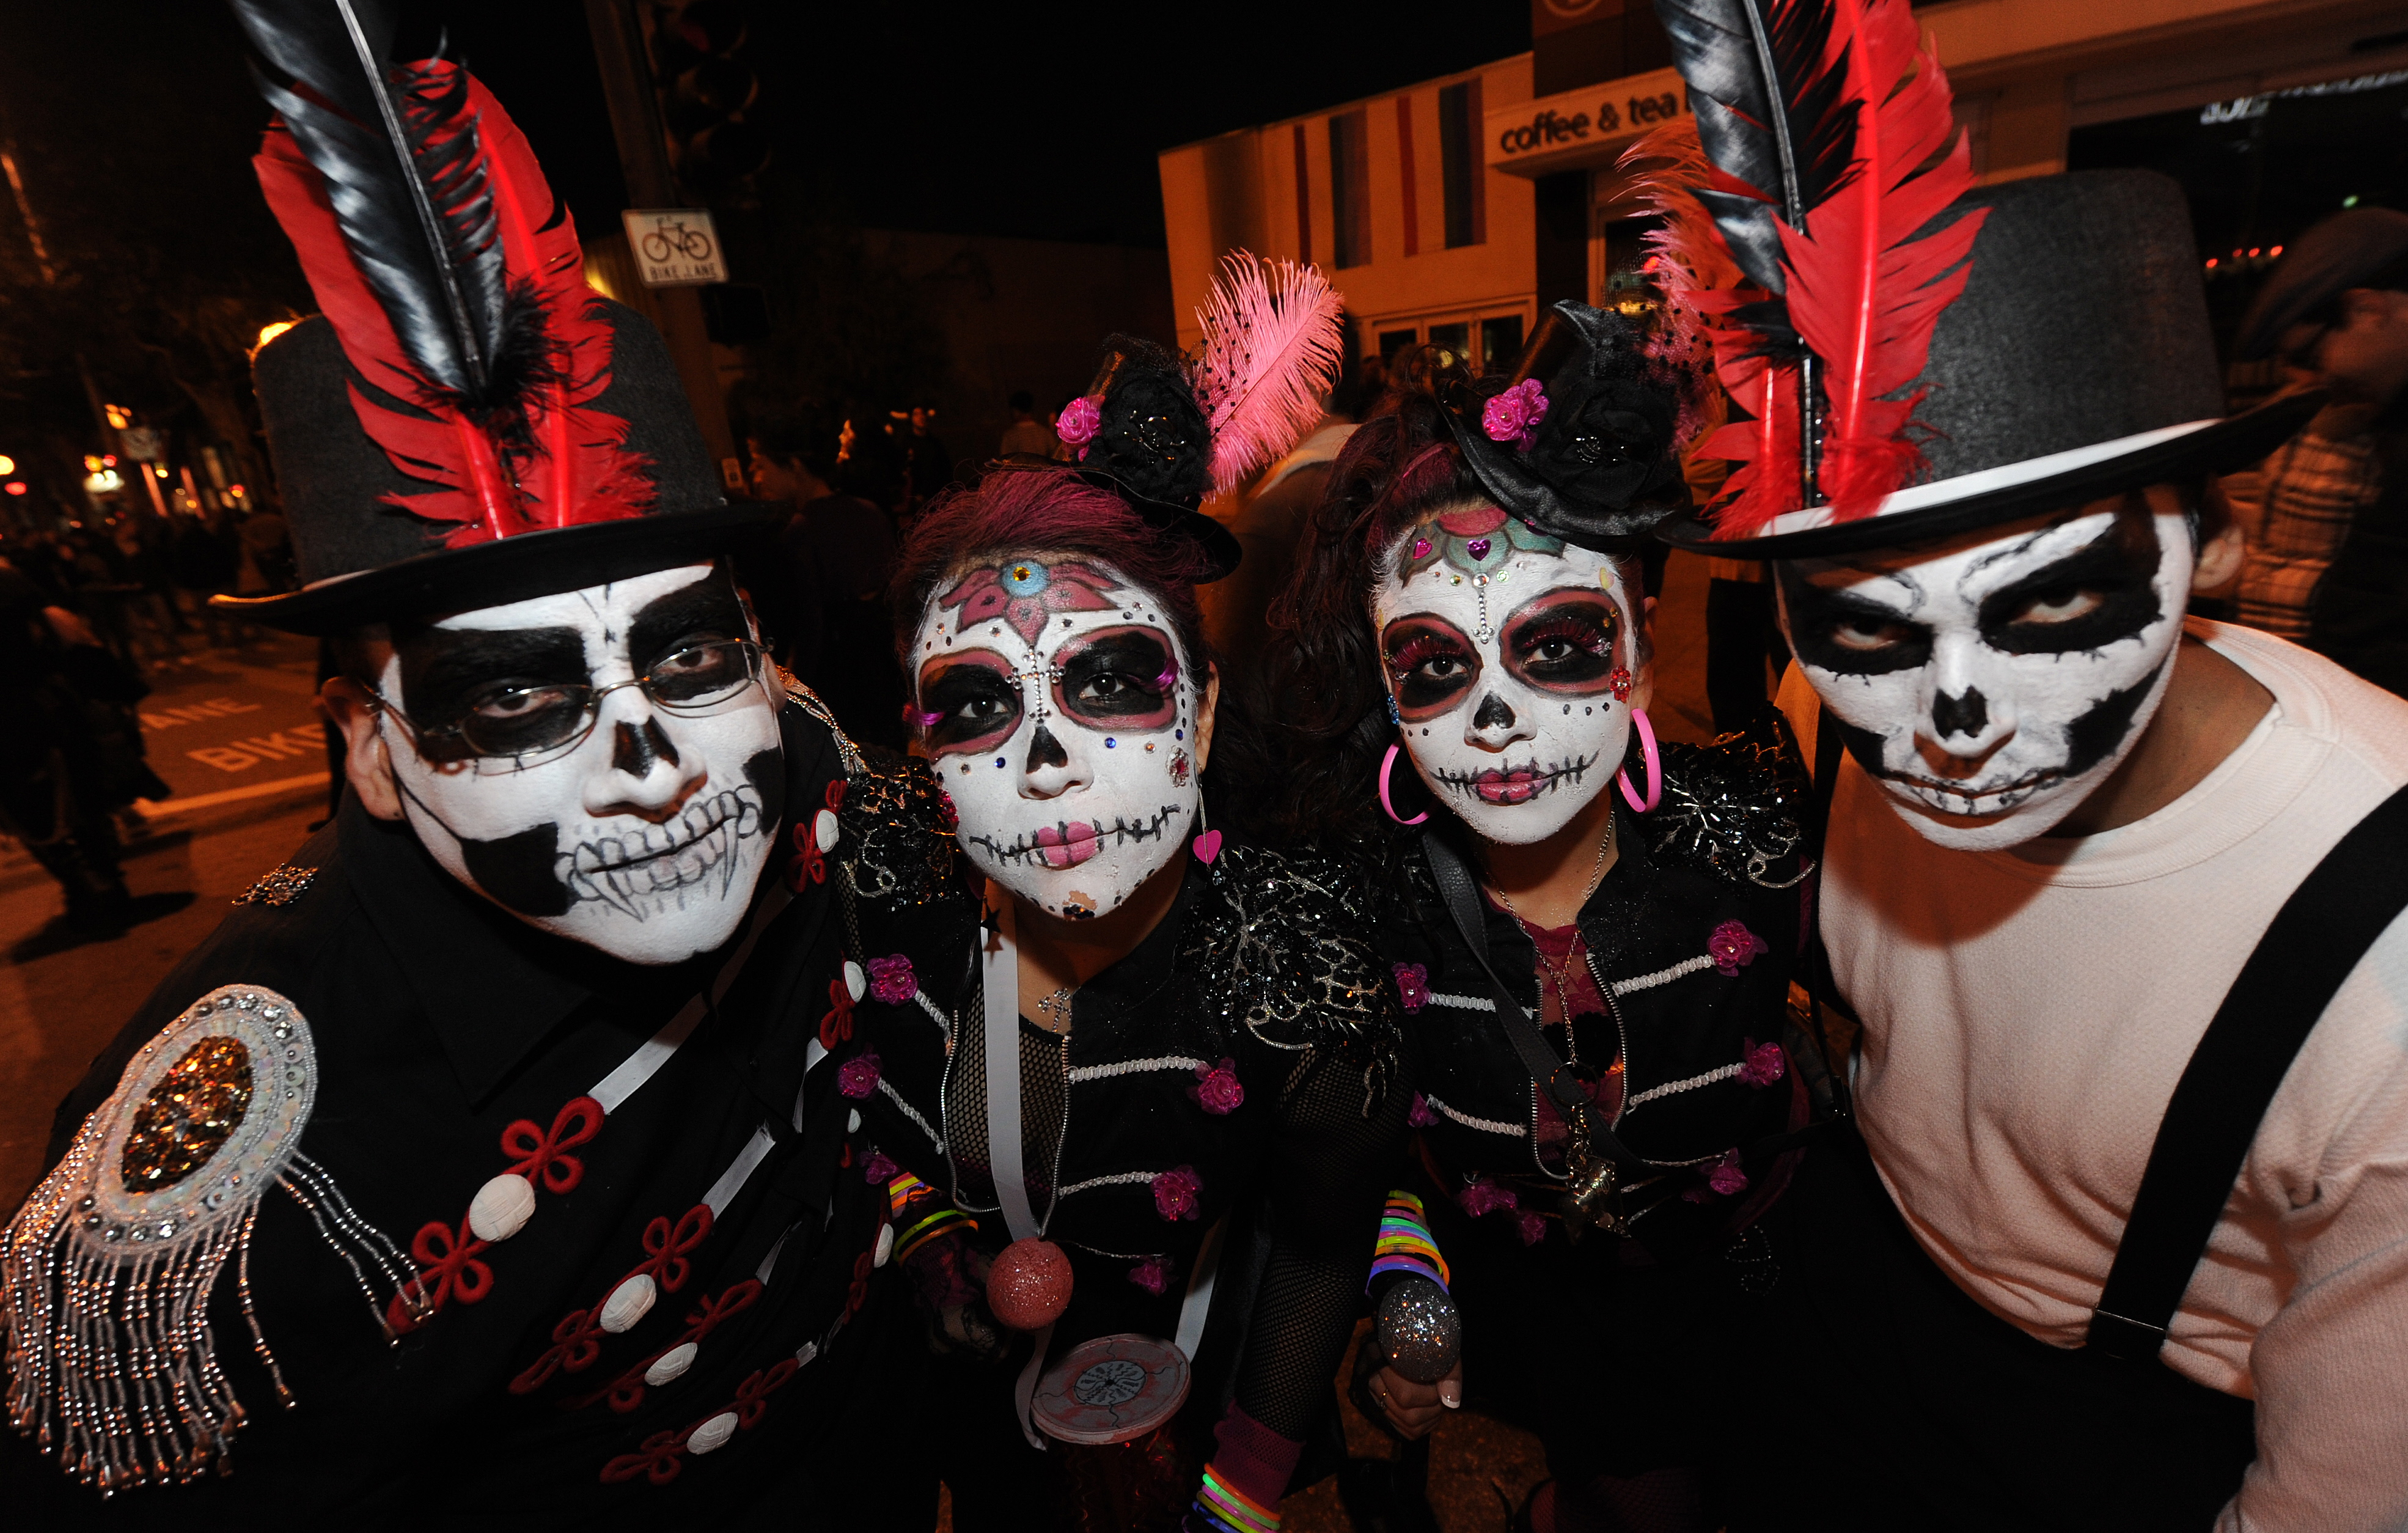 Day of the Dead costumes at West Hollywood Carnaval